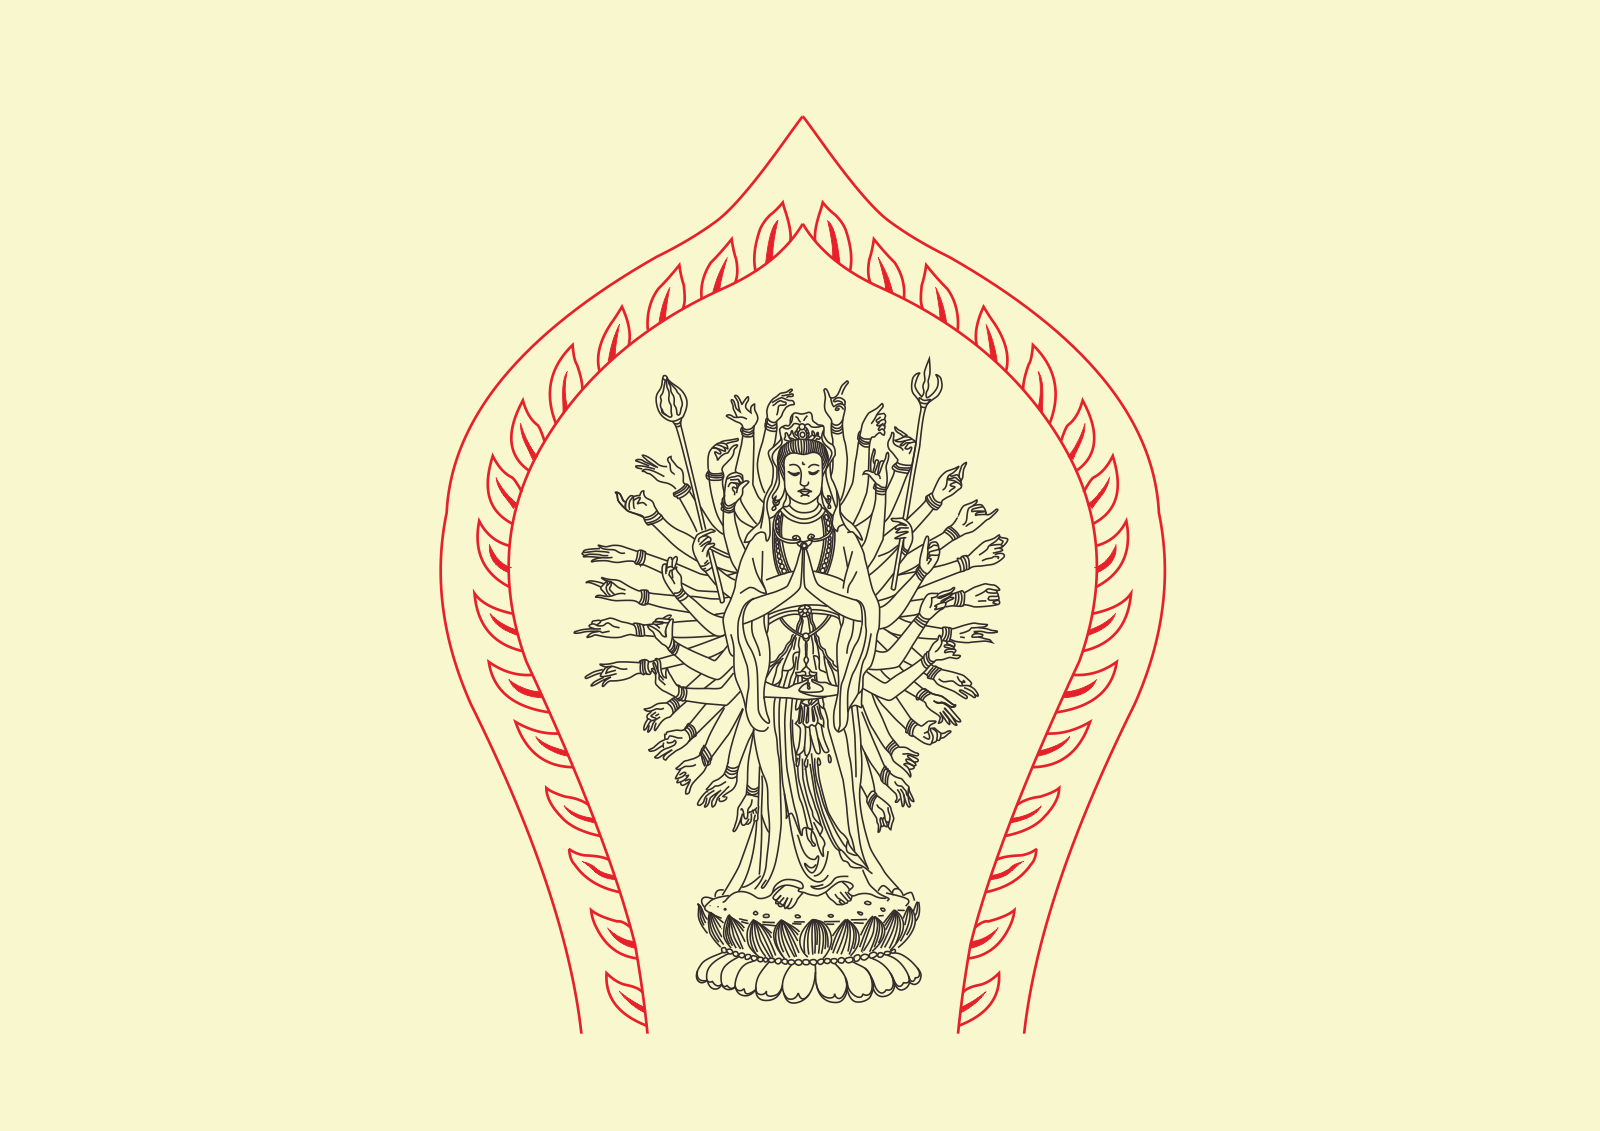 chinesefontdesign.com 2017 02 04 20 10 55 Guanyin bodhisattva(Thousand Hand Kwan yin) Chinese buddhist images Vectors CDR Free Download